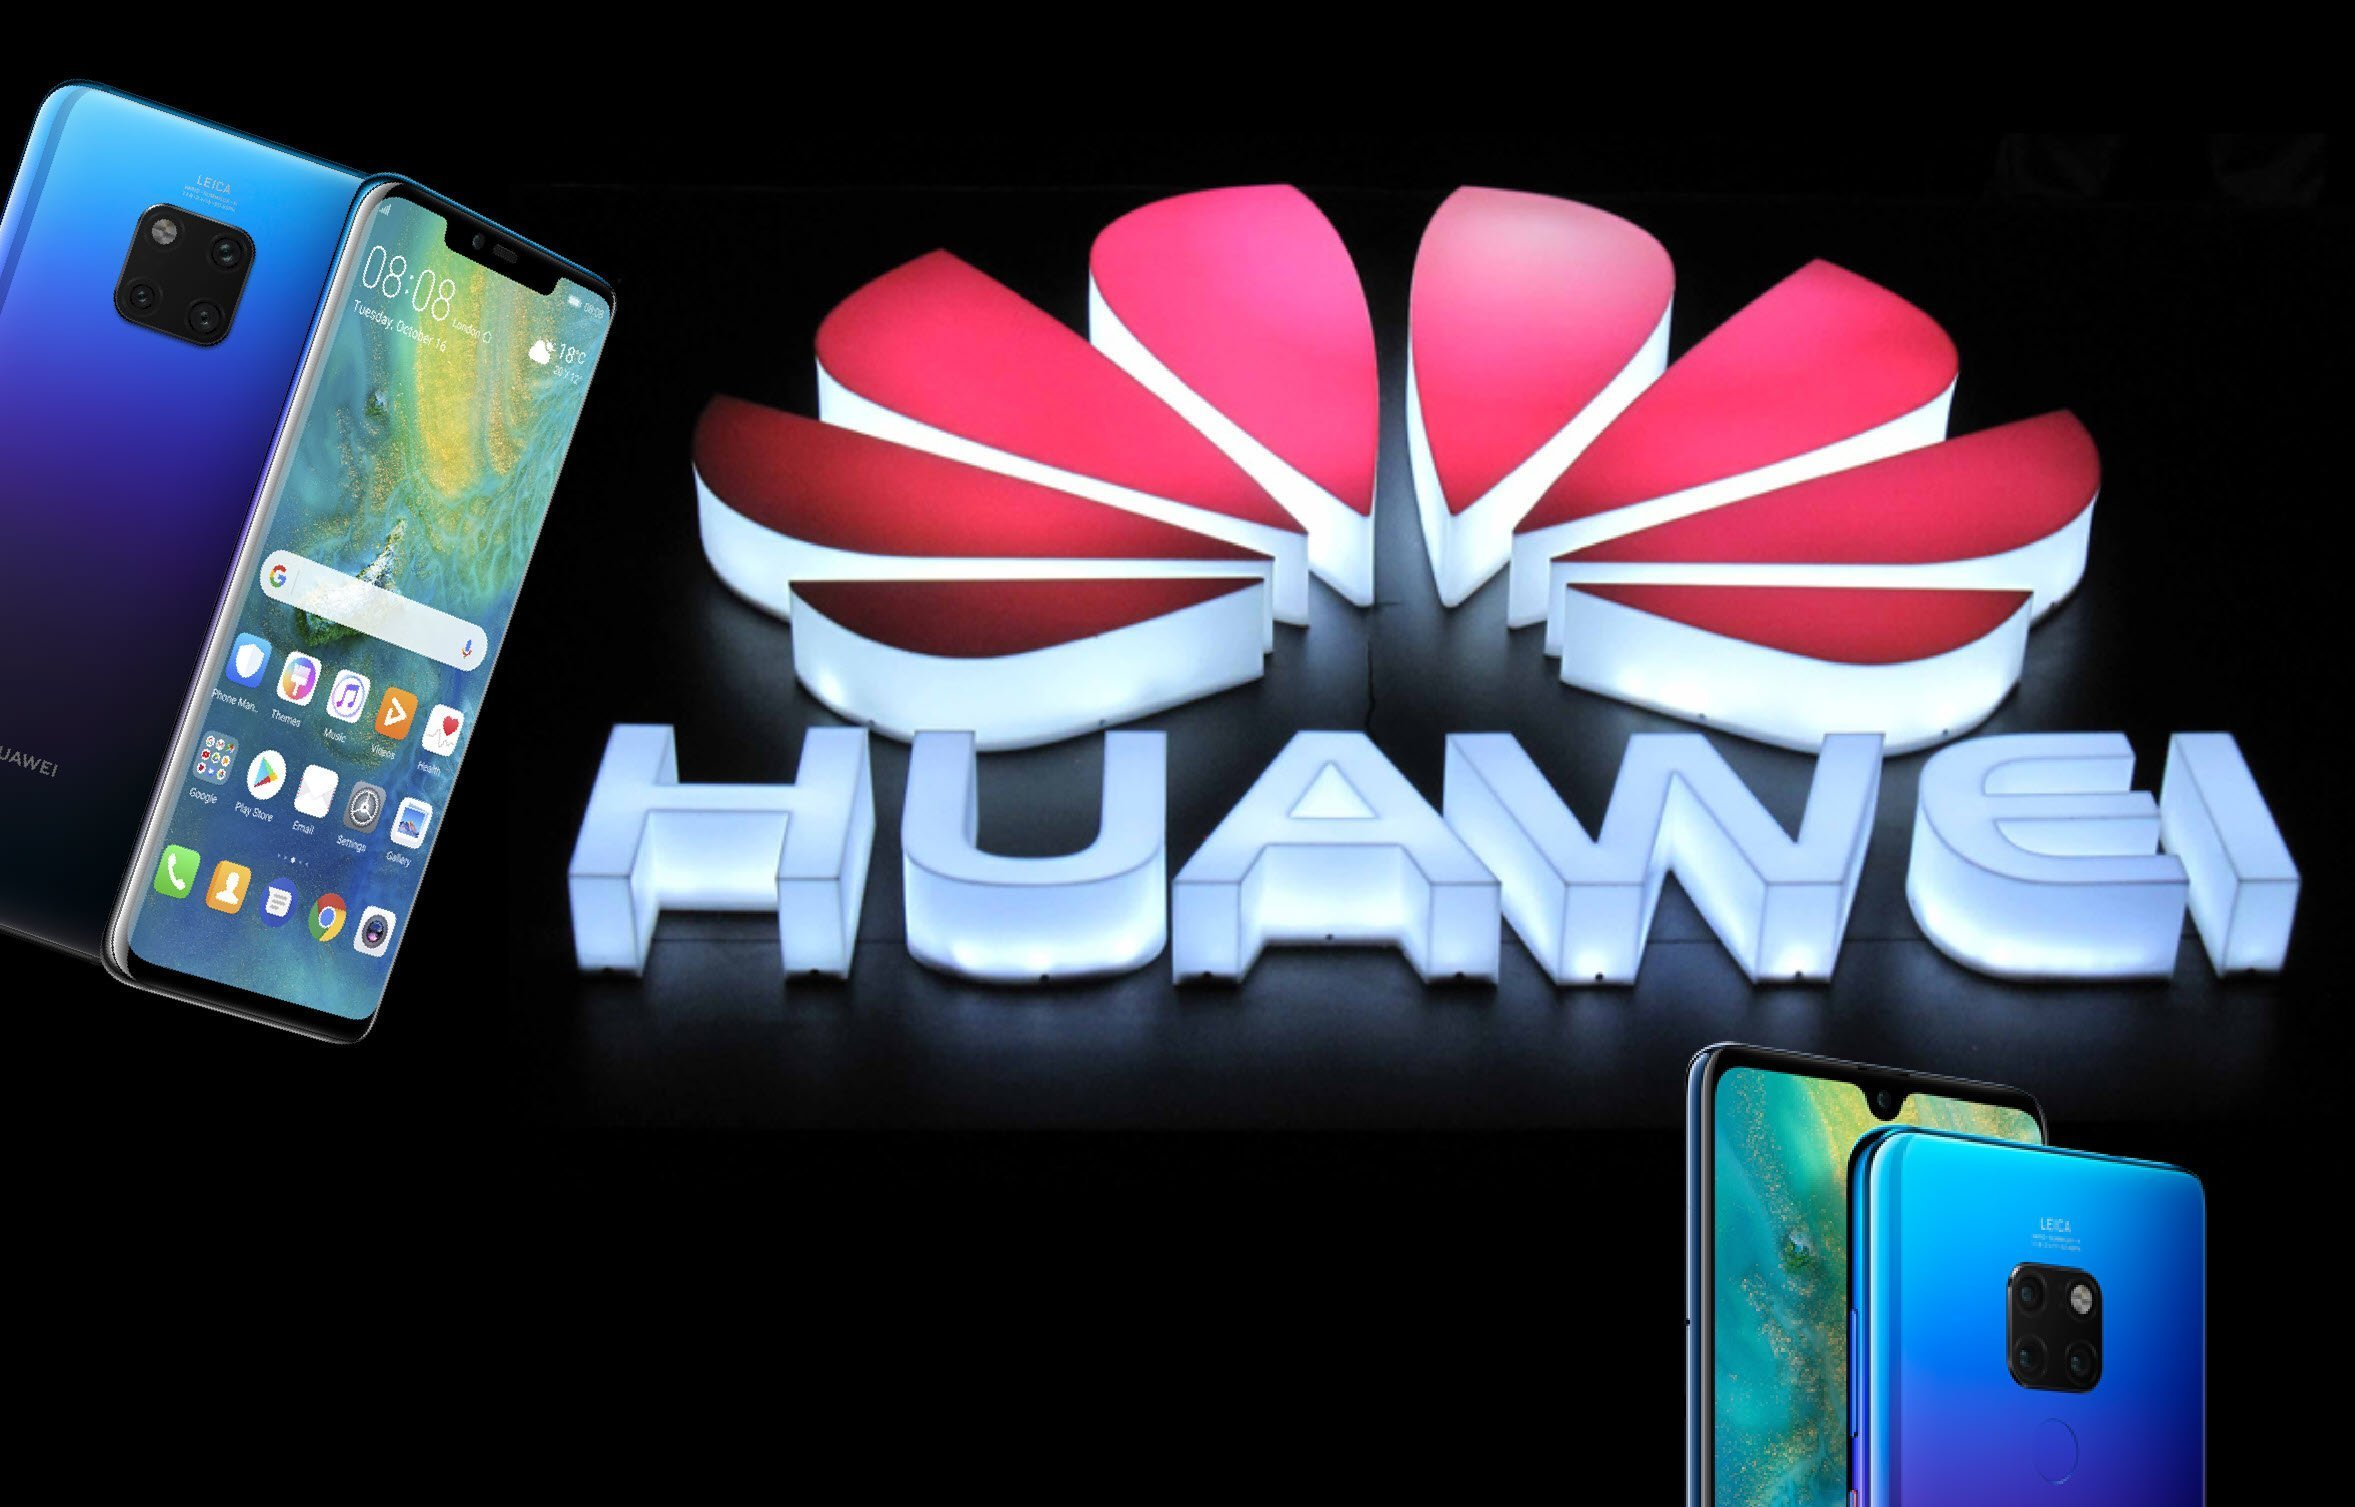 Hongmeng: This is Huawei's back up mobile Operating System